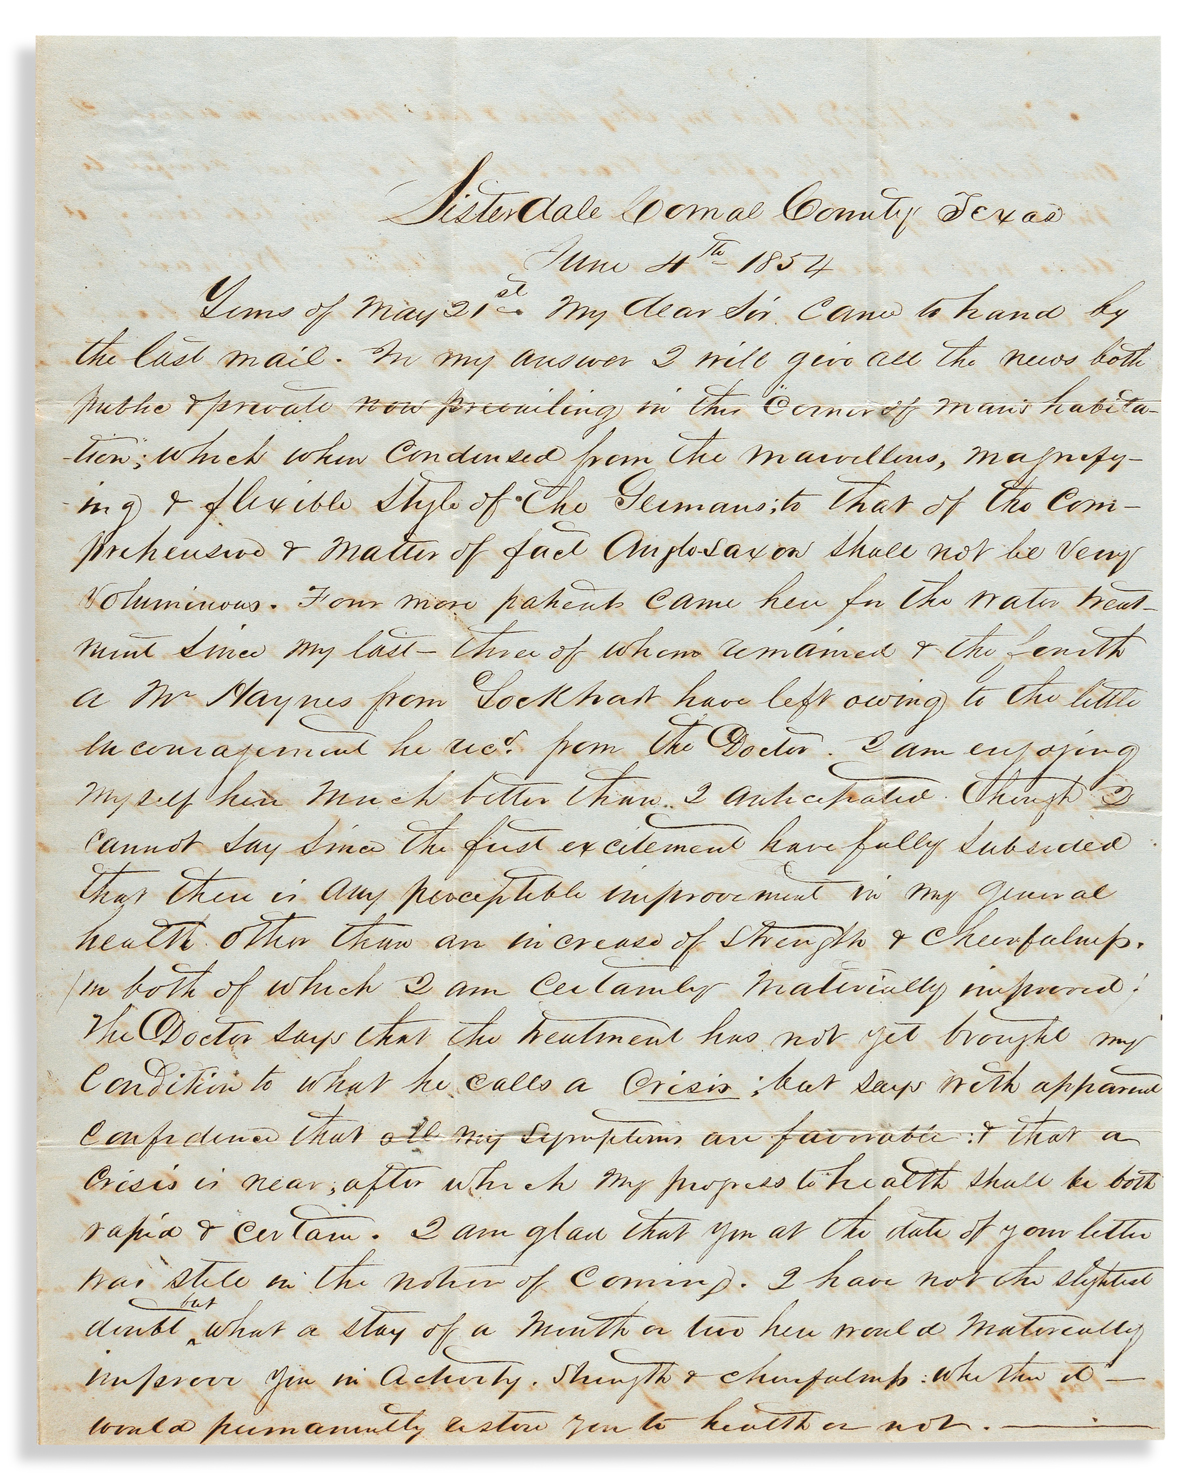 (WEST--TEXAS.) A.G. Campbell. Letter by a patient taking the water cure at Kapps Hydropathic Clinic.